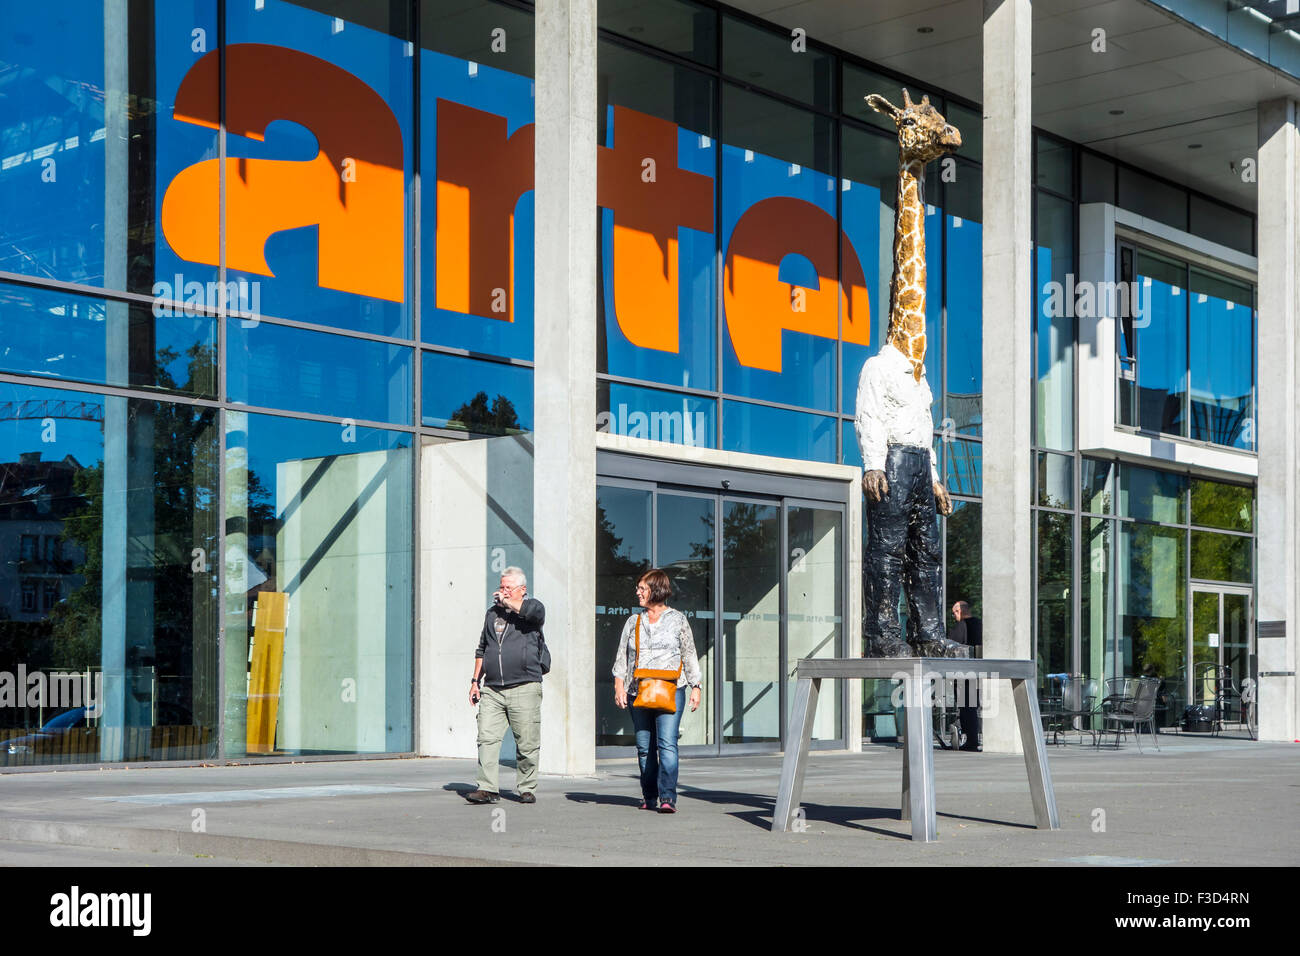 Entrance of the The Arte building,  Franco-German TV network and European channel in Strasbourg, France - Stock Image